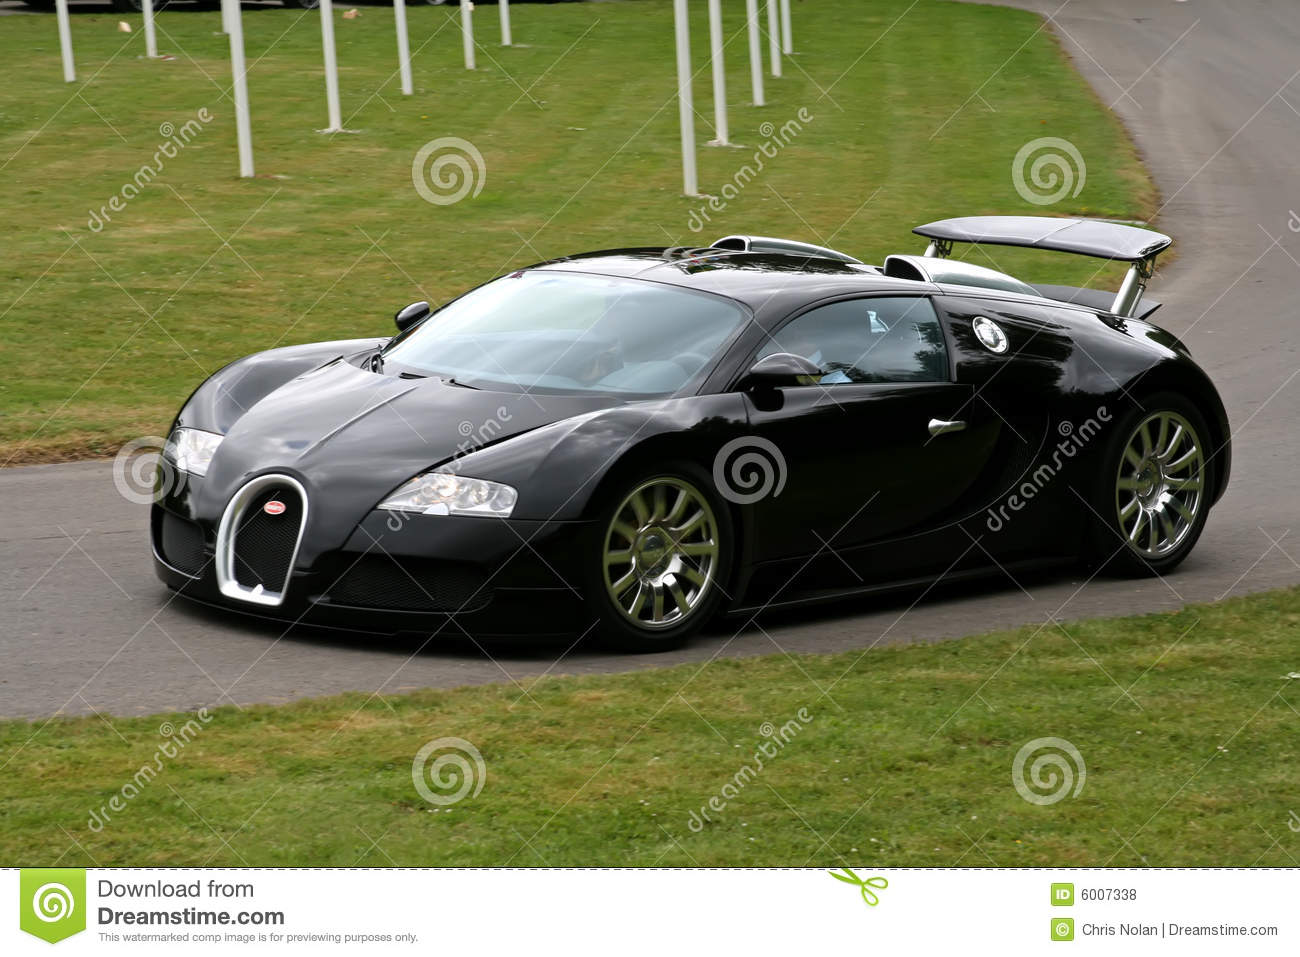 black bugatti veyron editorial stock photo image of fast. Black Bedroom Furniture Sets. Home Design Ideas